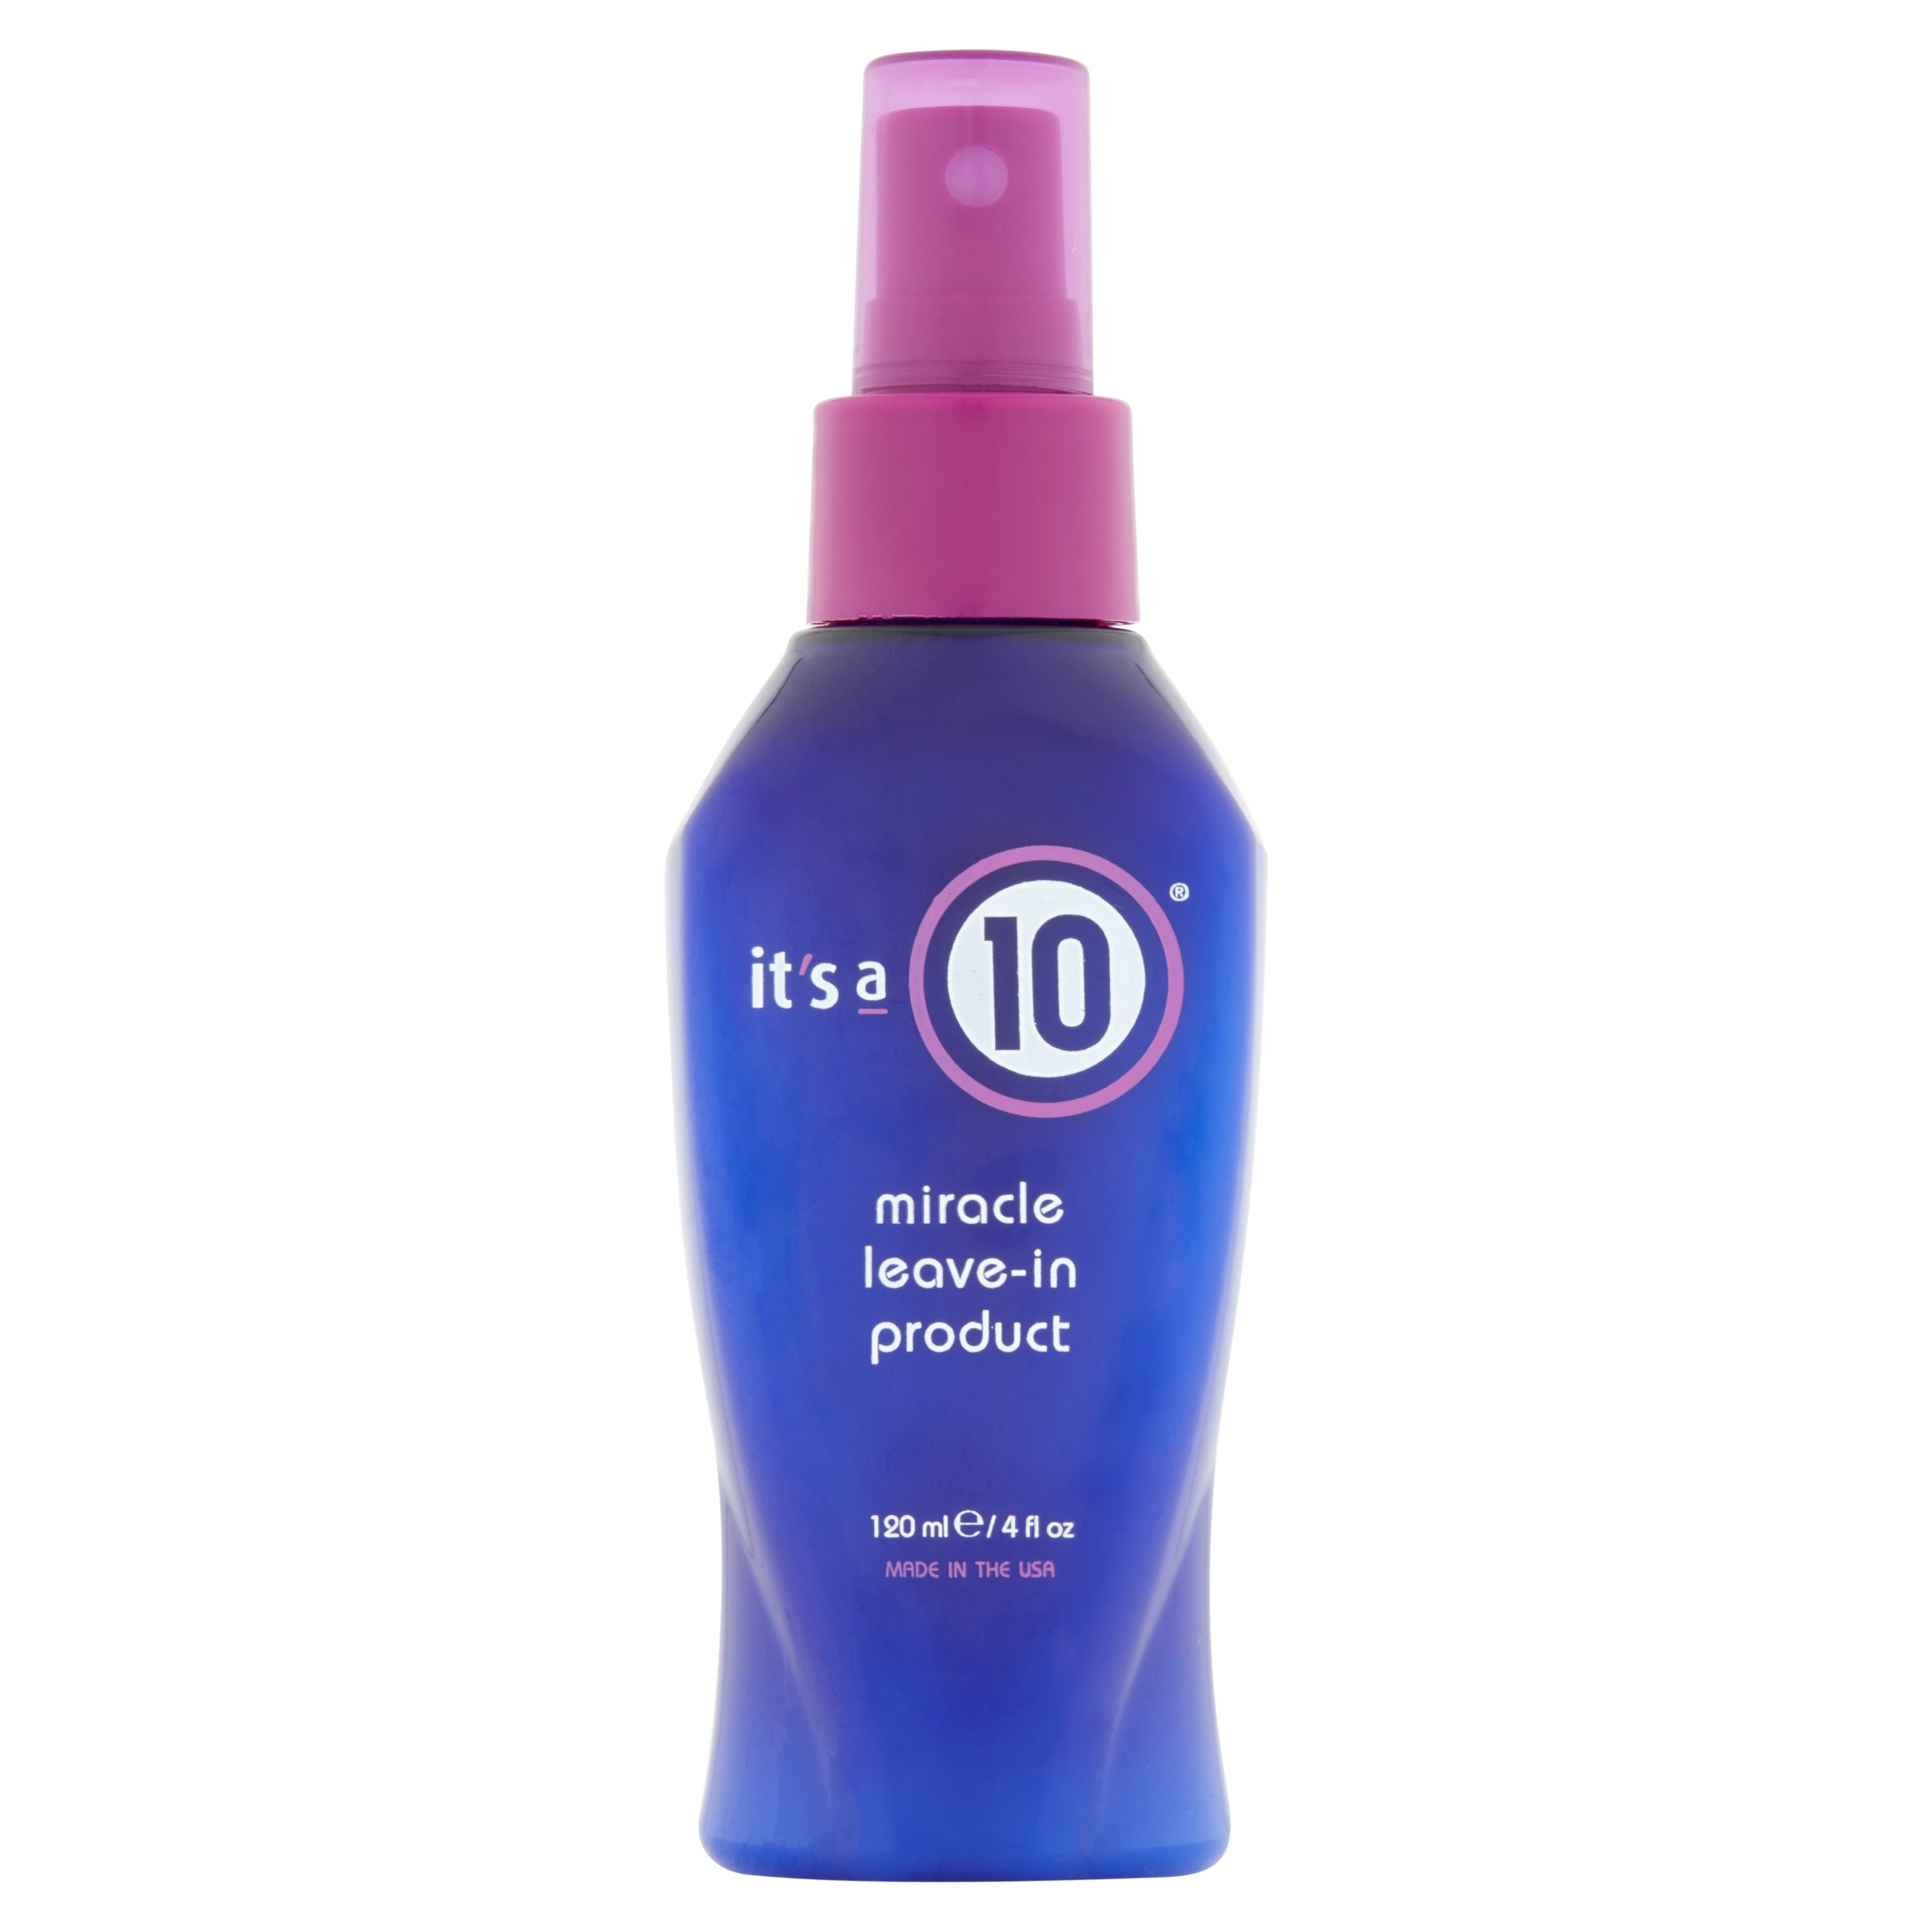 It's a 10 Miracle Leave-In Product, 4.0 Fl Oz